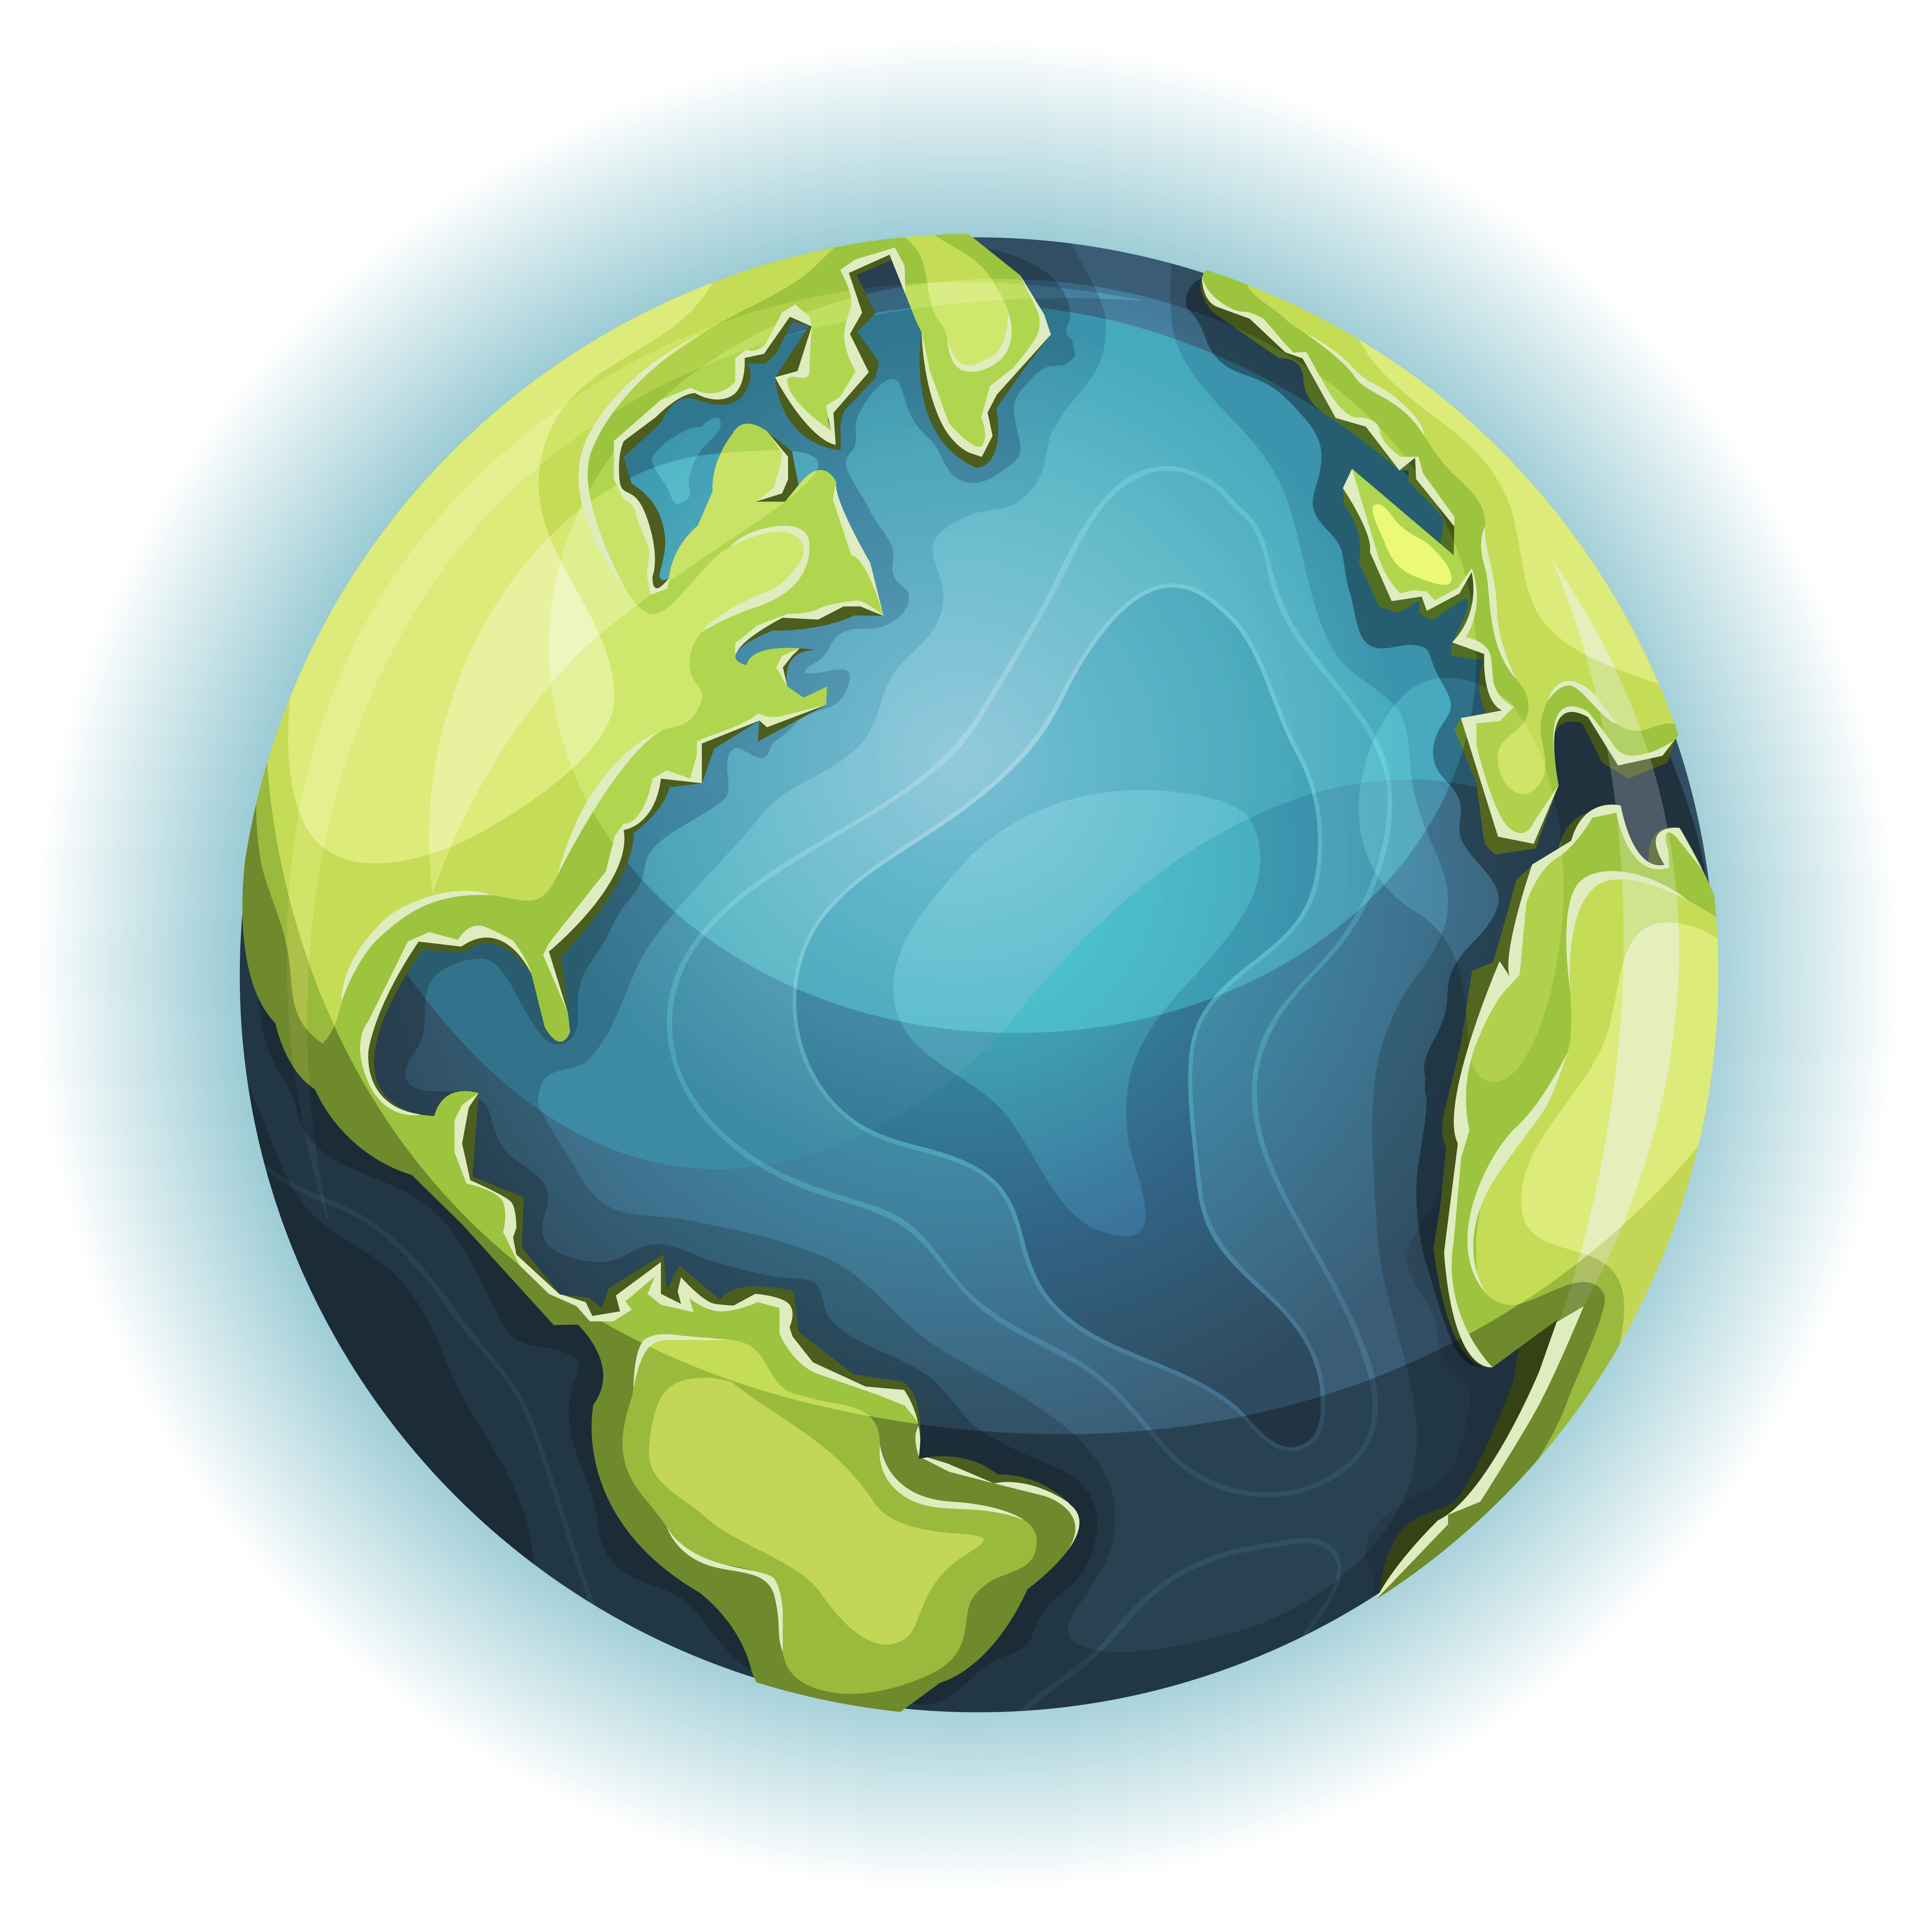 Cartoon Earth Planet Download Free Vectors Clipart Graphics Vector Art Cartoon globe png cliparts, all these png images has no background, free & unlimited downloads. vecteezy